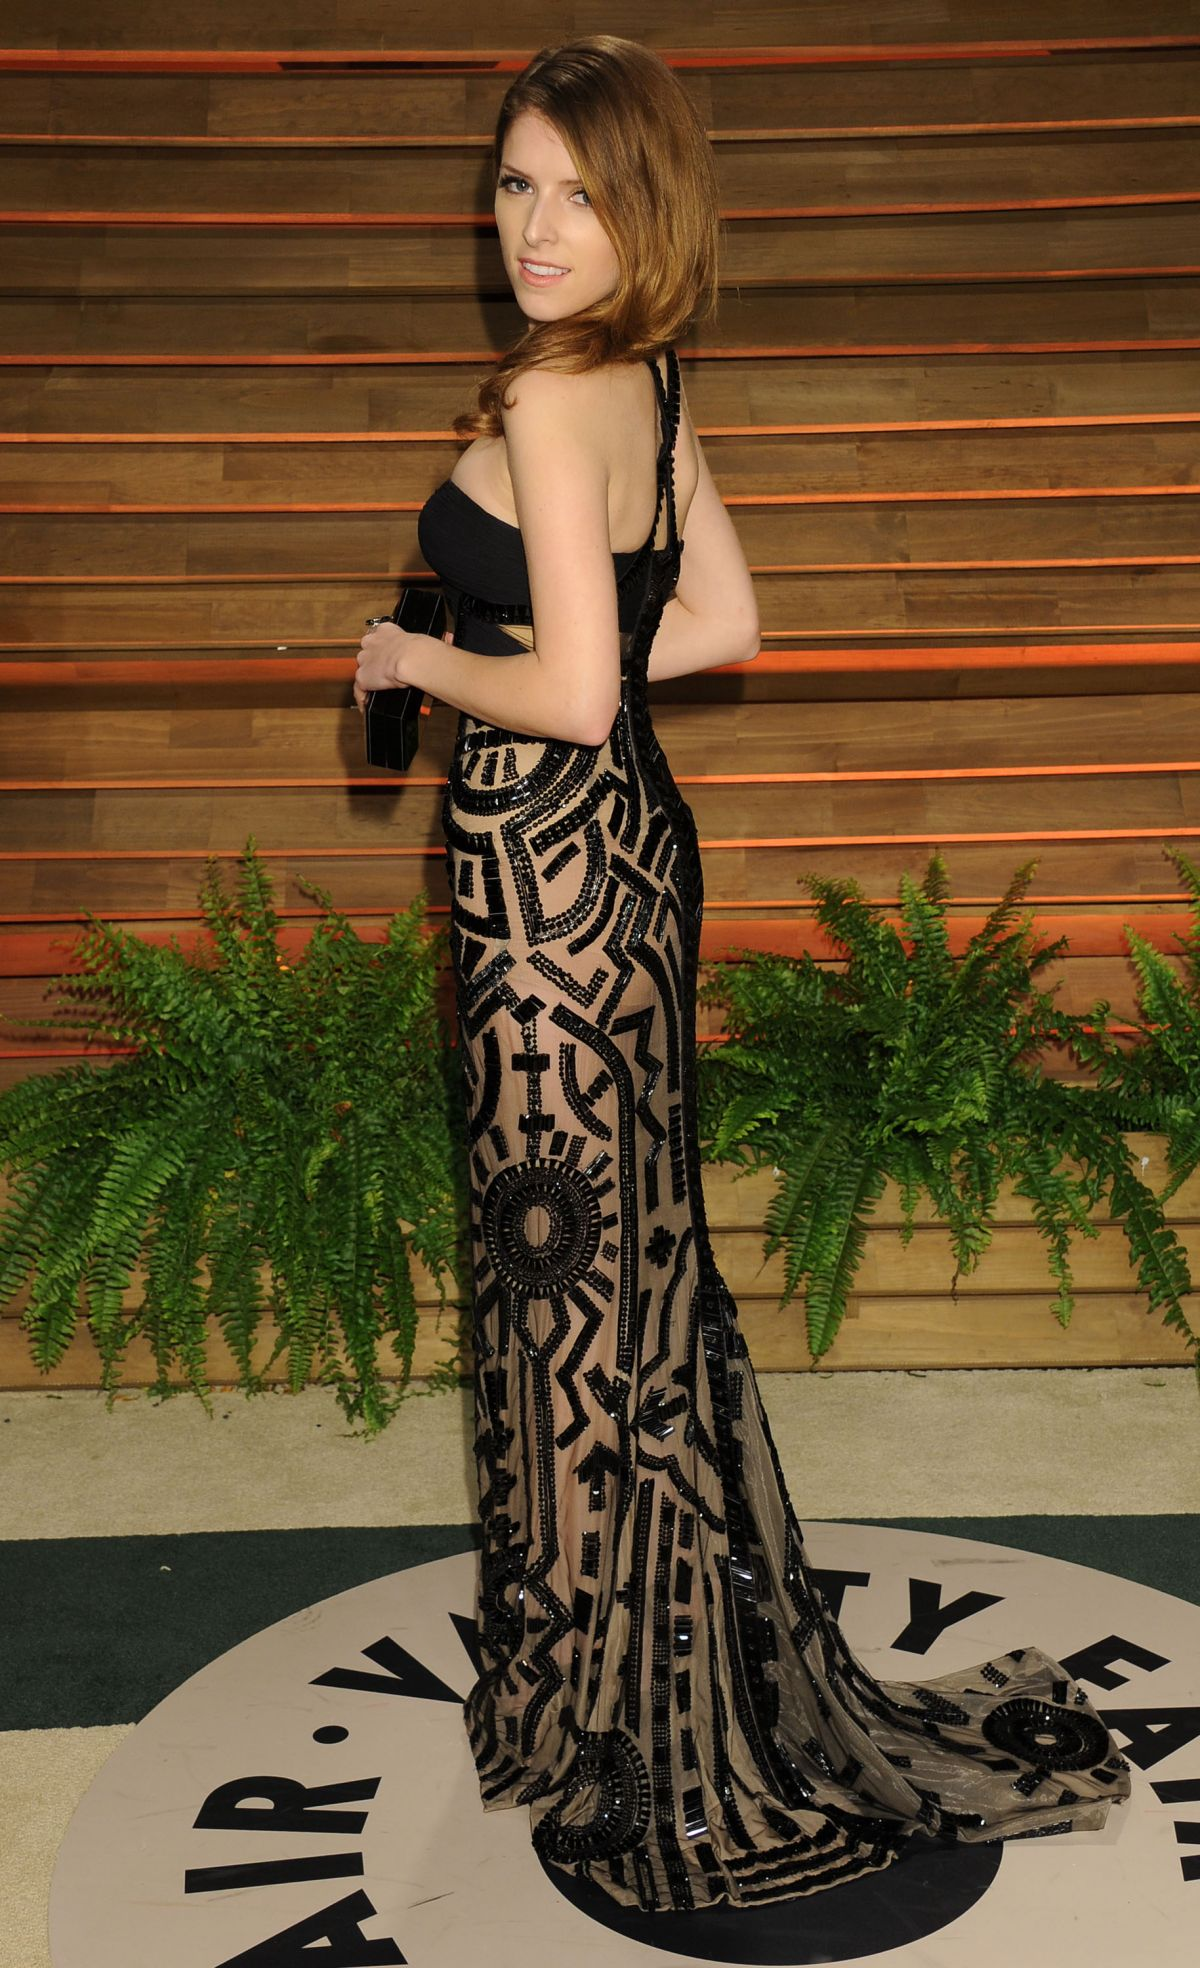 ANNA KENDRICK at Vanity Fair Oscar Party in Hollywood - HawtCelebs